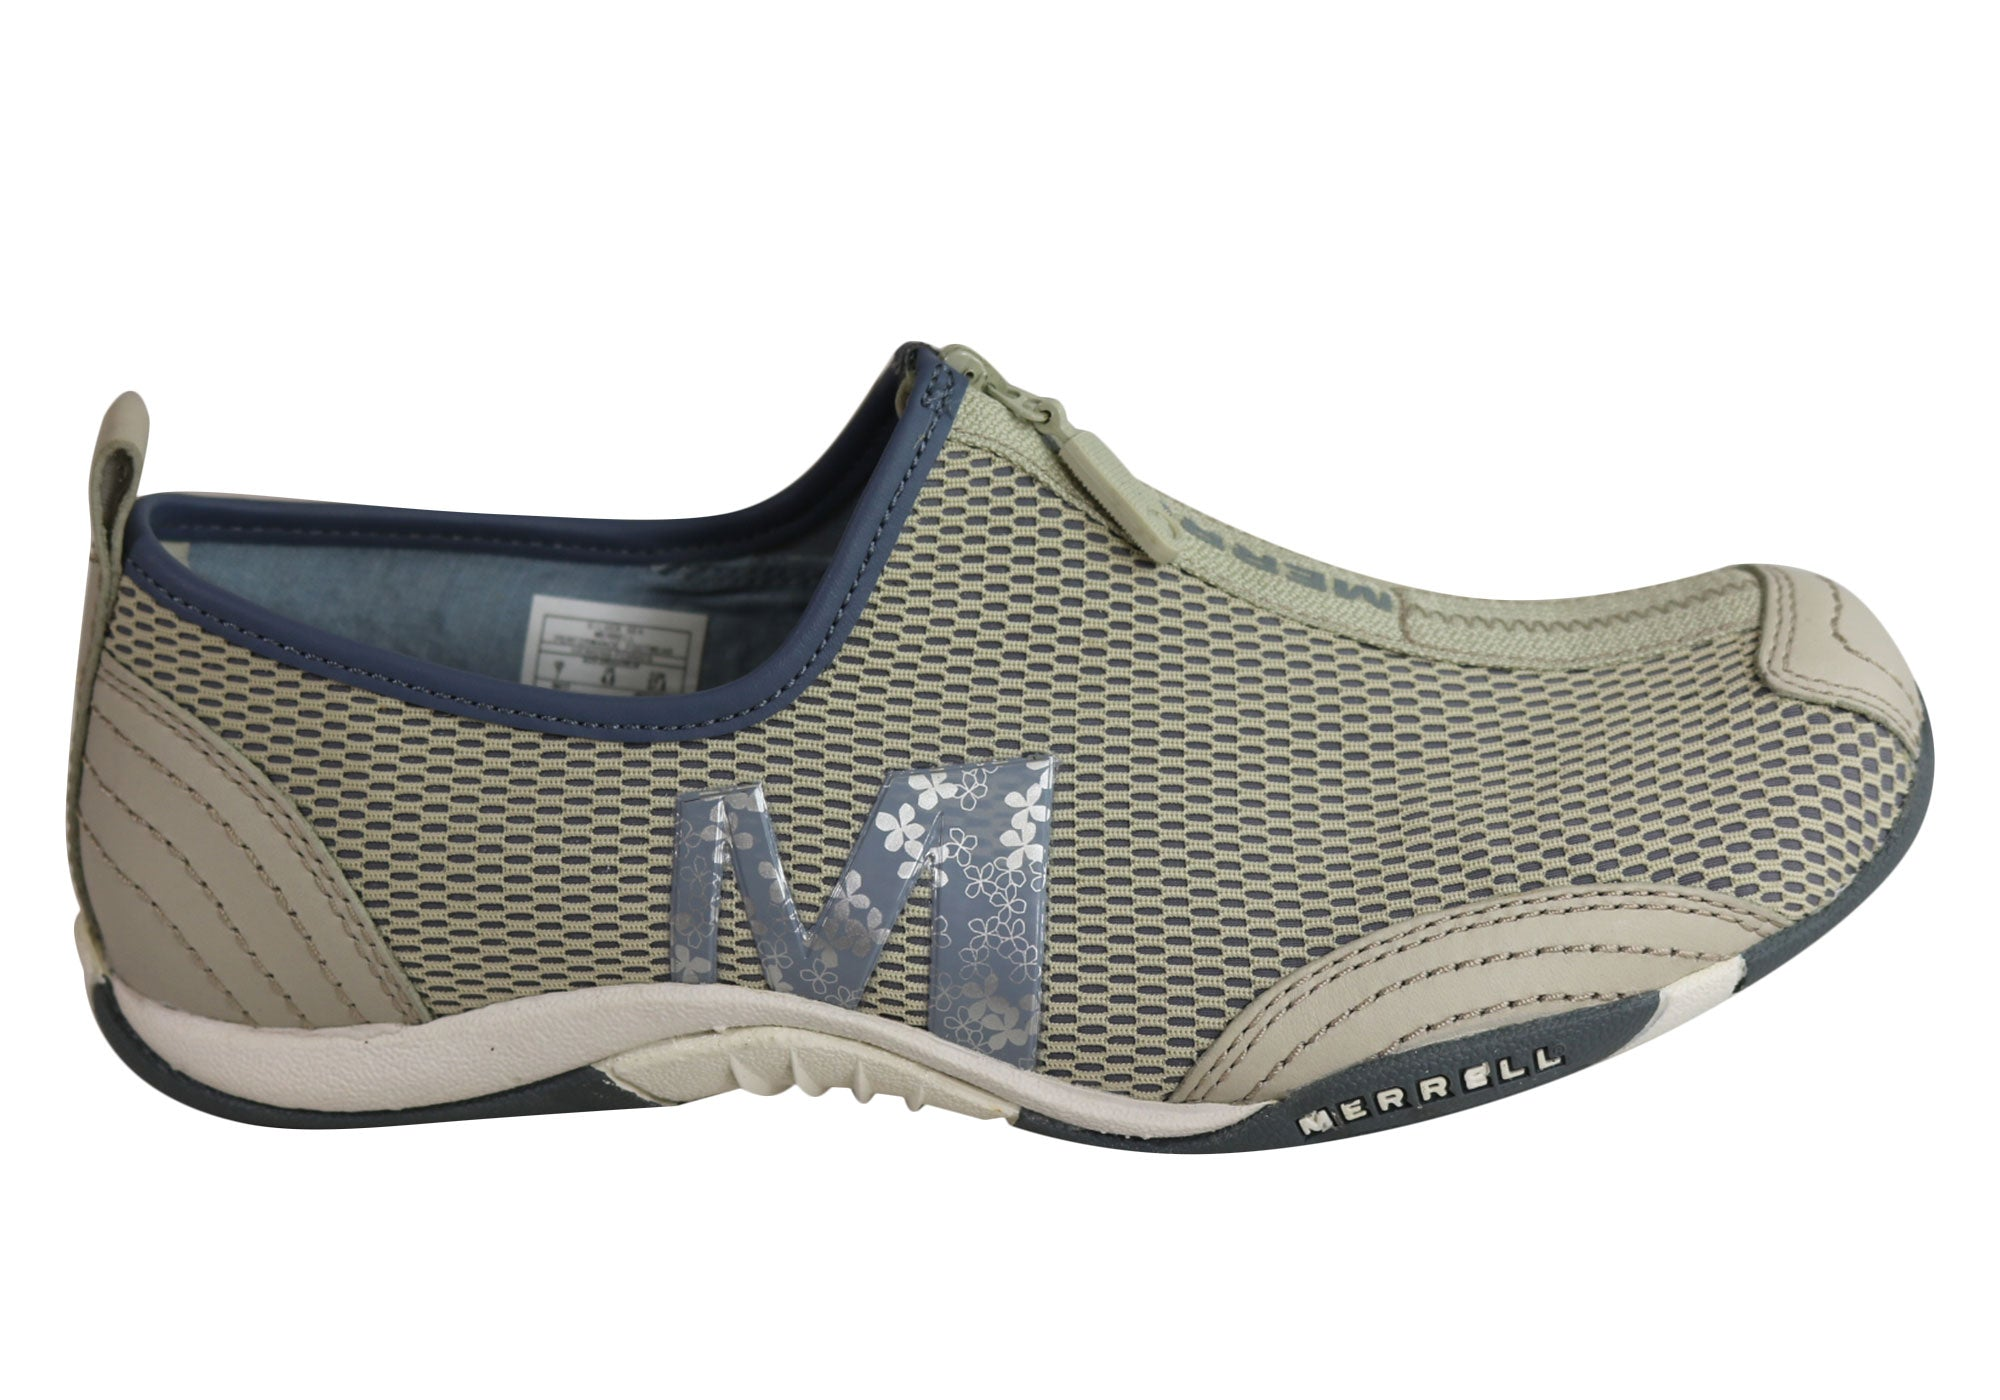 43119de1 Details about Merrell Barrado Womens Comfort Flat Casual Zip Shoes -  ShopShoesAU